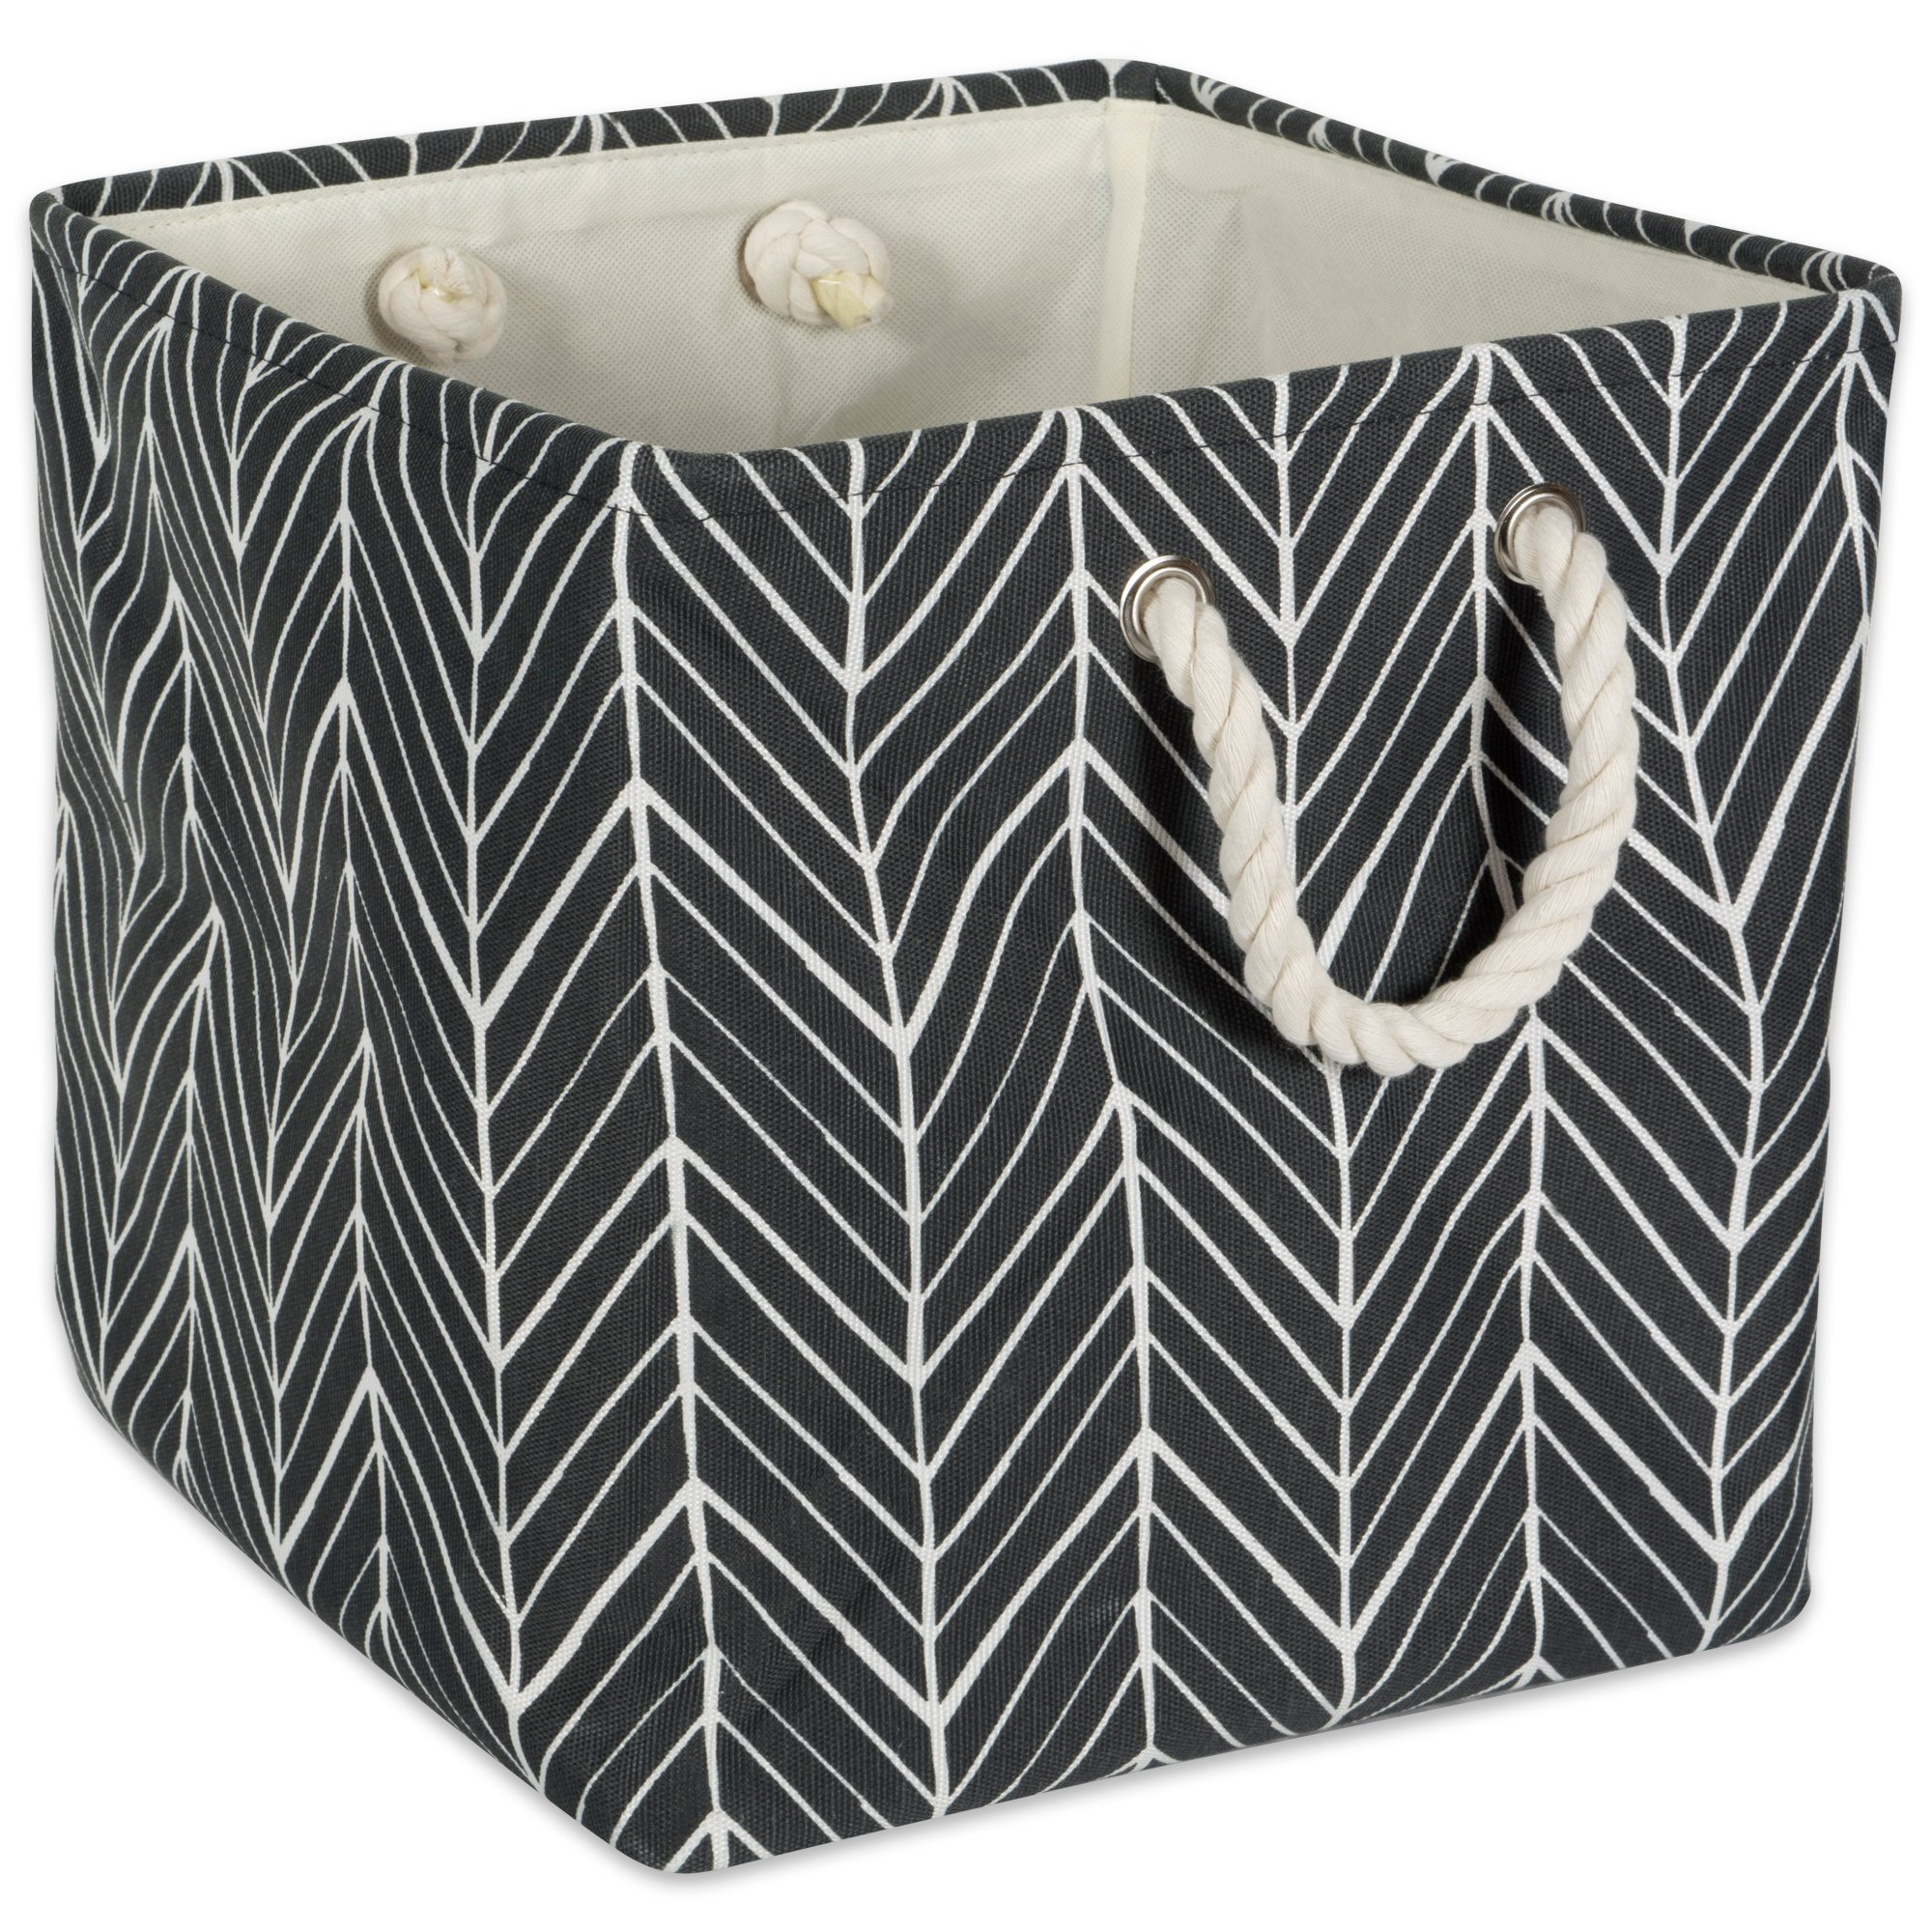 DII Collapsible Polyester Storage Basket or Bin with Durable Cotton Handles, Home Organizer Solution for Office, Bedroom, Closet, Toys, & Laundry (11x11x11'') - Black Herringbone